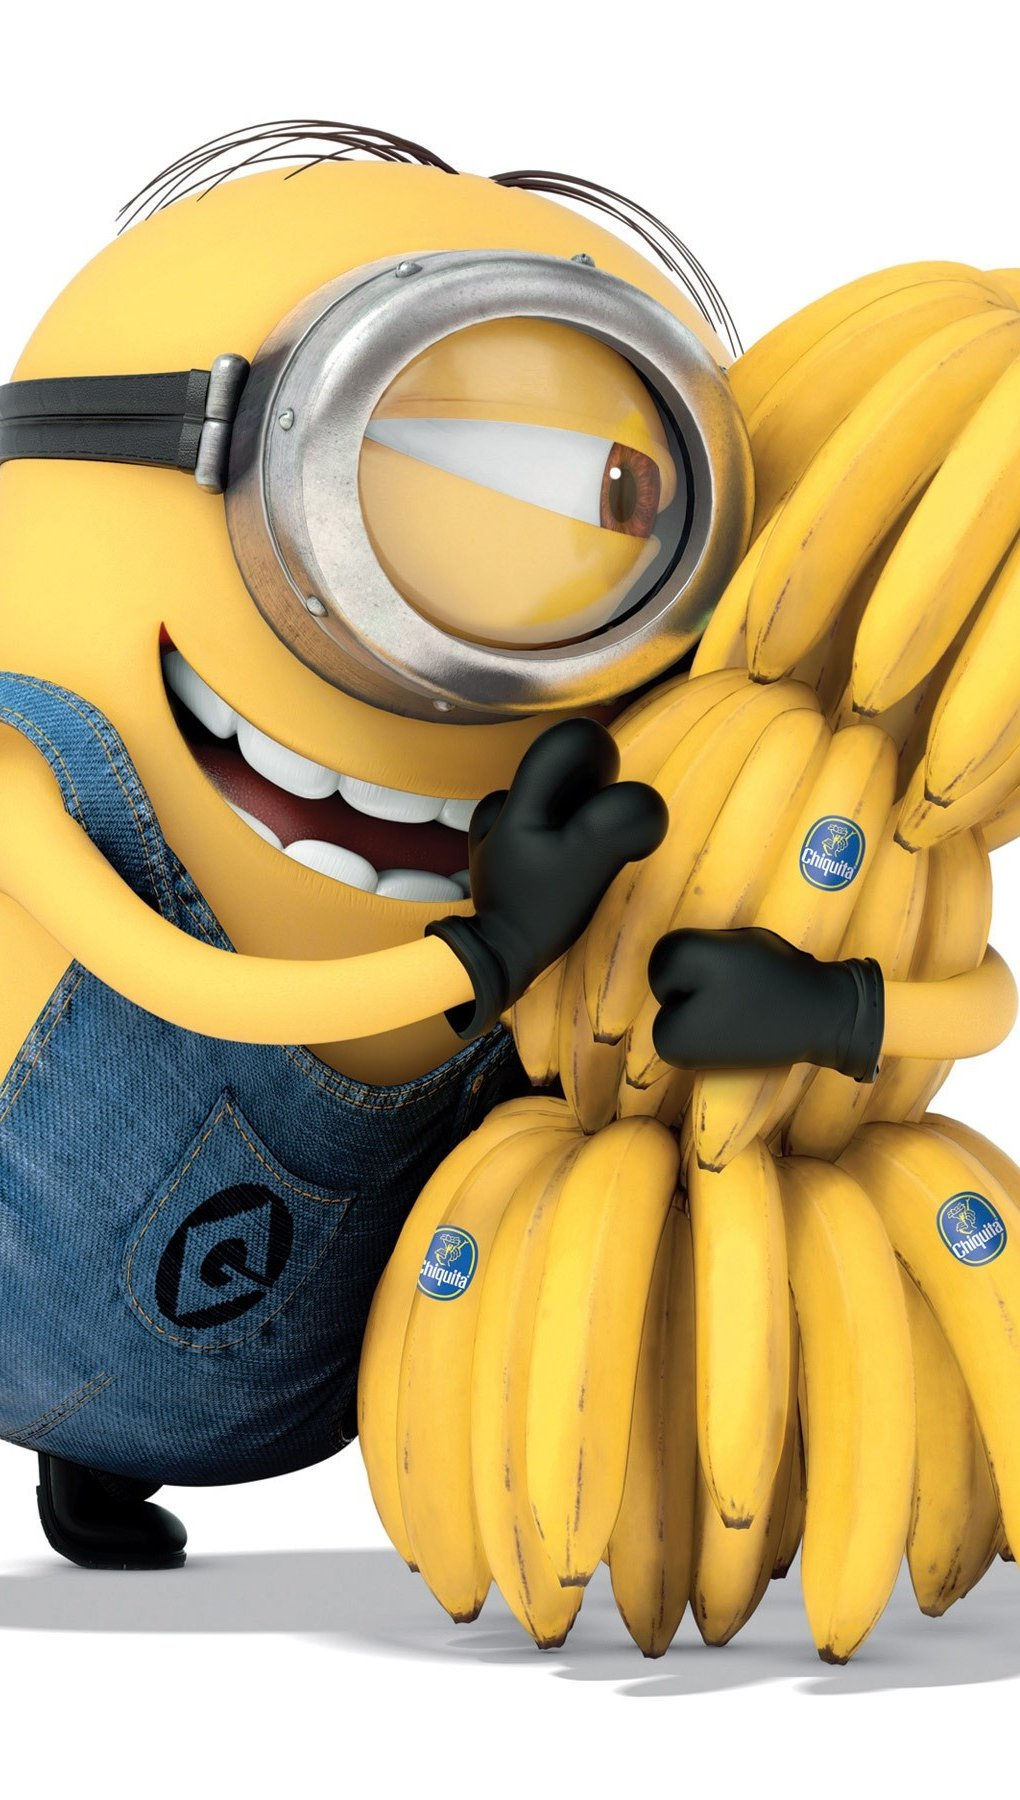 Wallpaper A minion with bananas Vertical